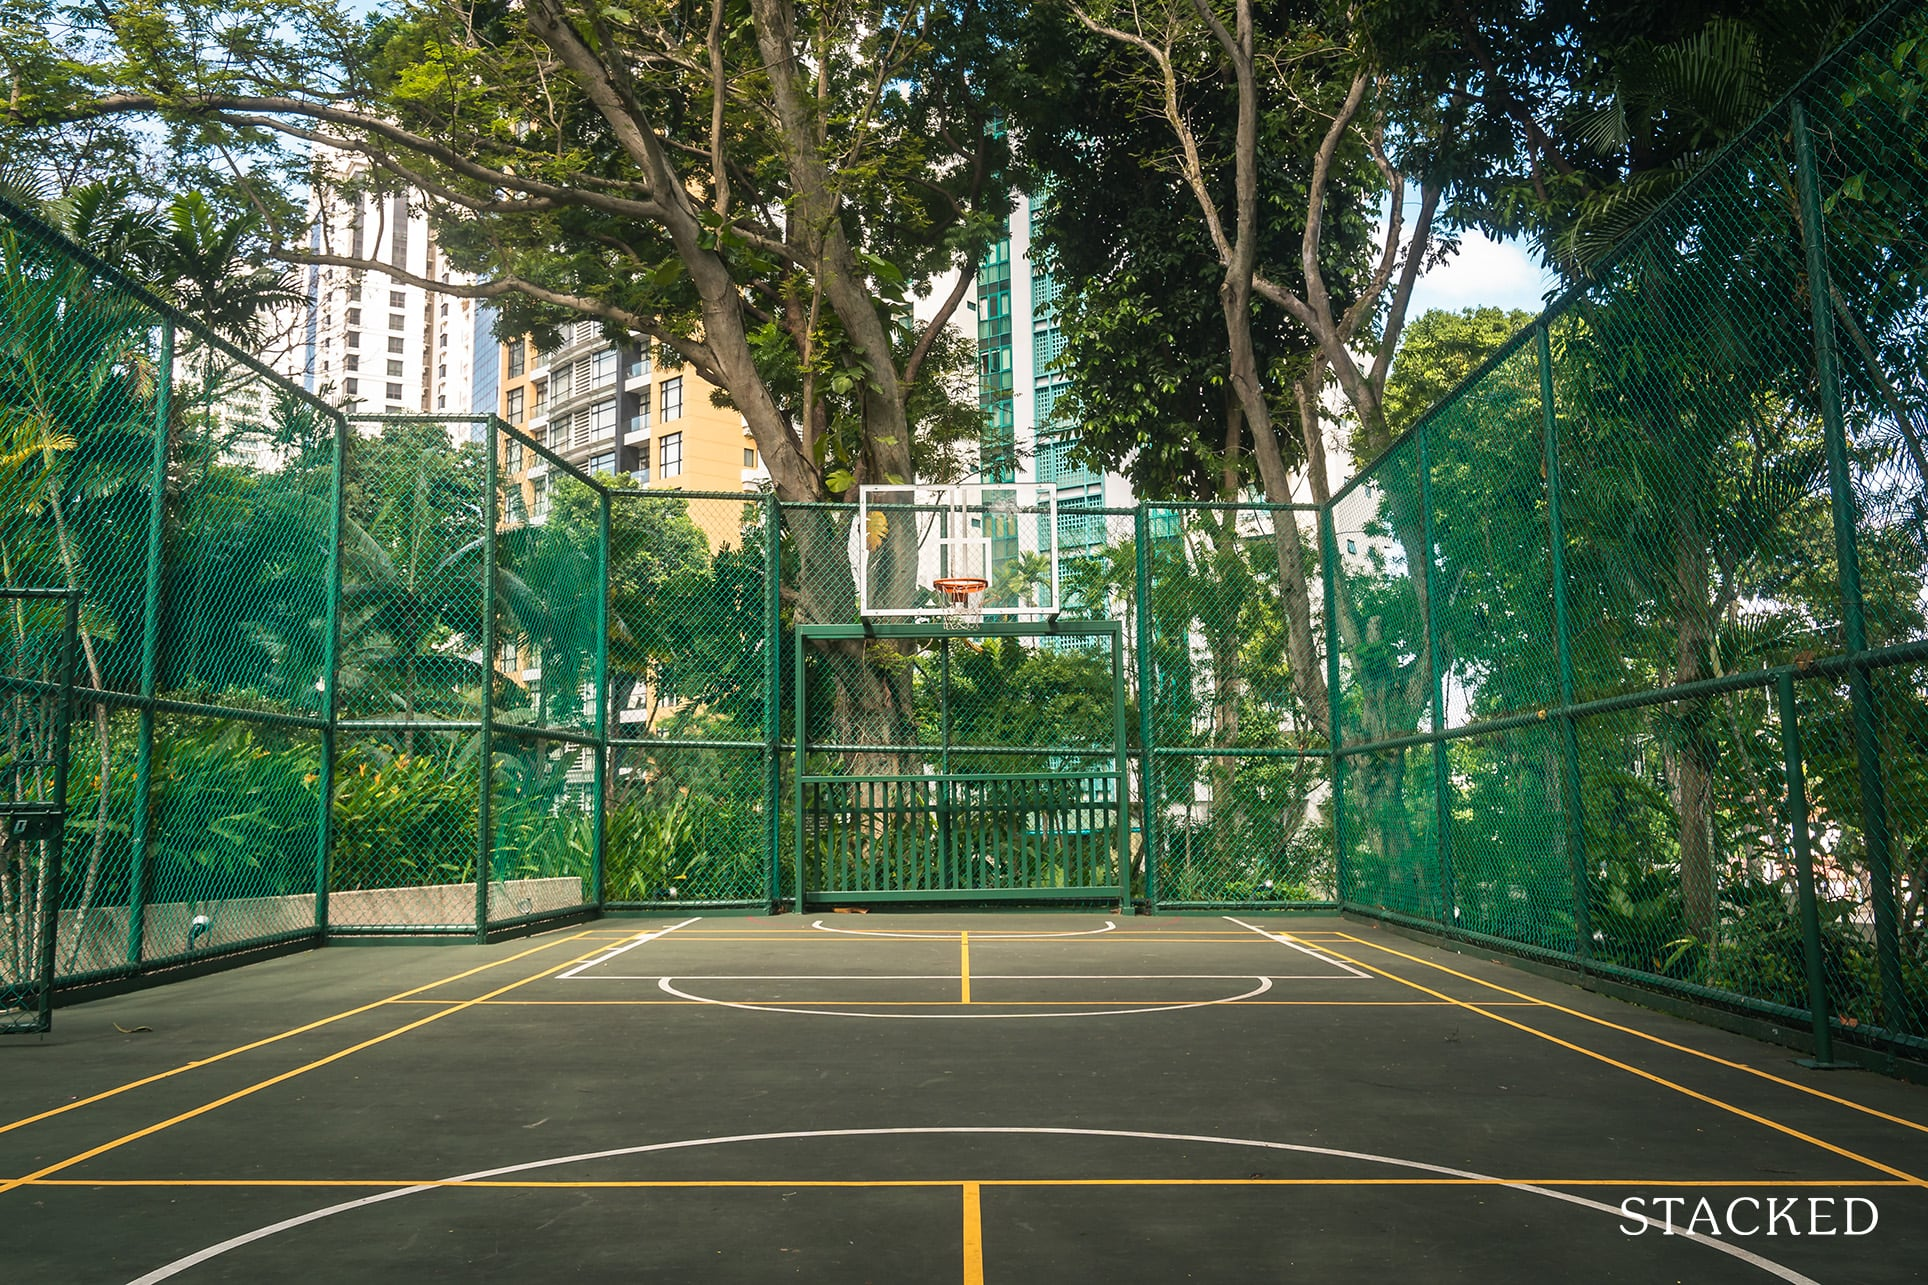 the claymore basketball court